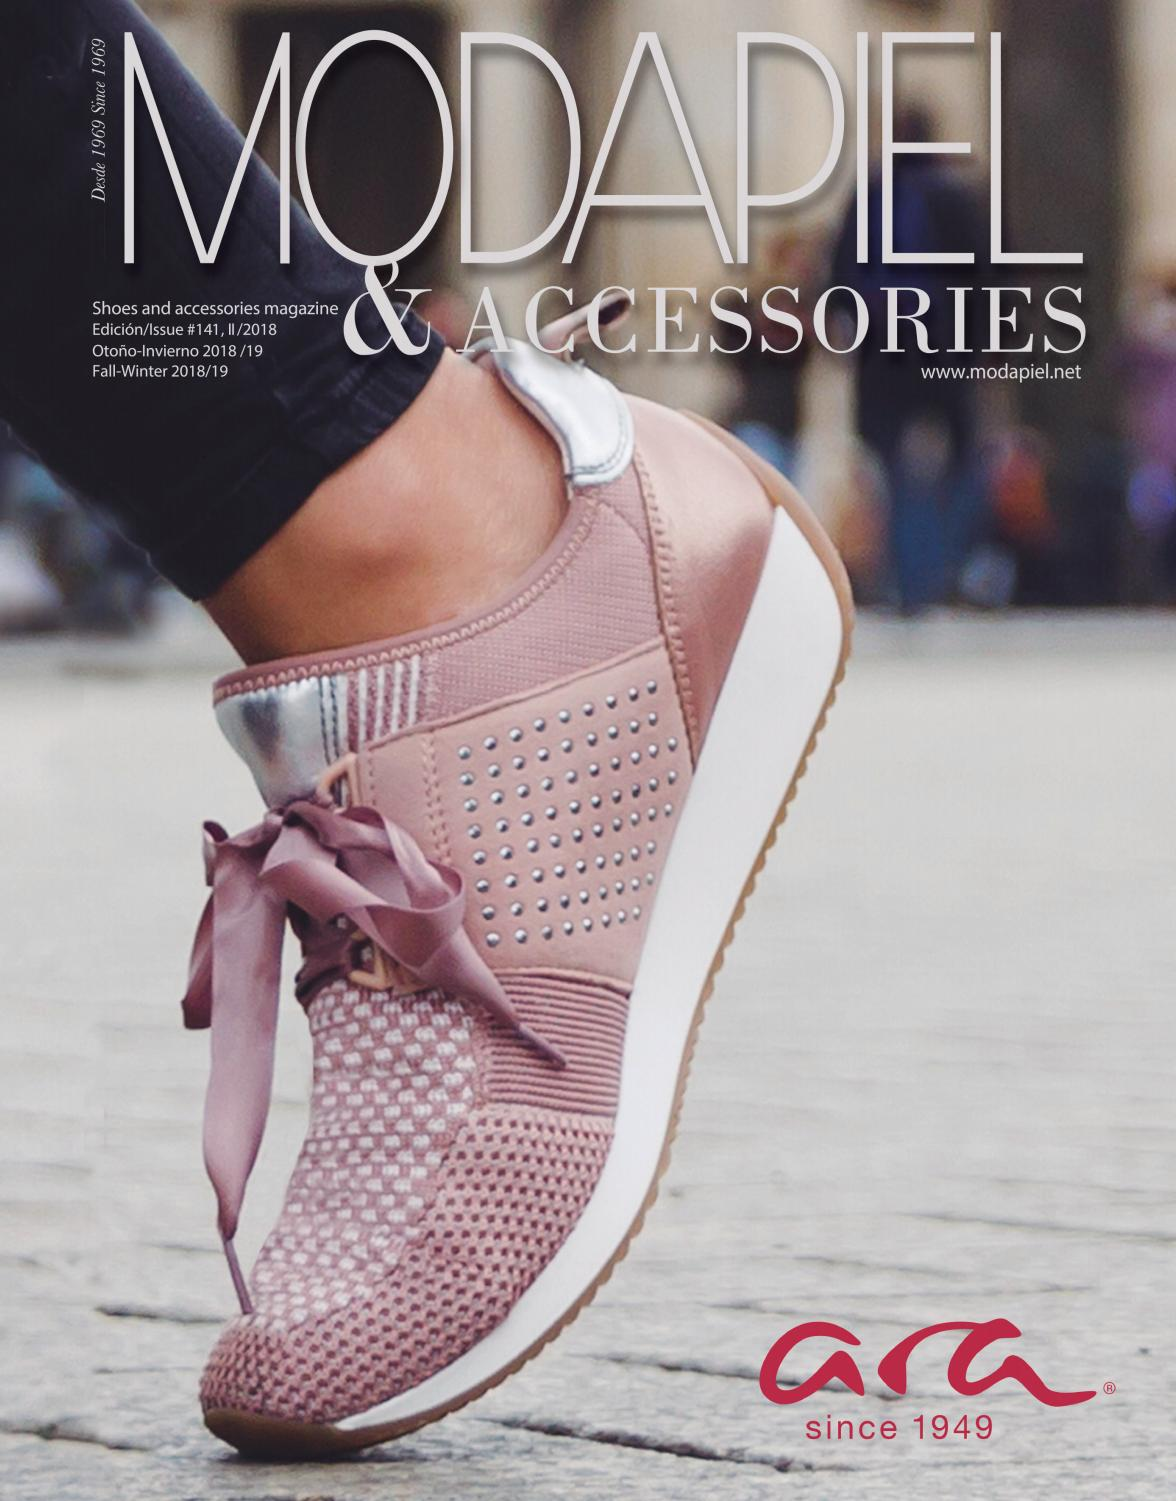 696a0538a1c Modapiel & Accessories 141 Shoes and accessories magazine by Prensa Técnica  S.L. - issuu